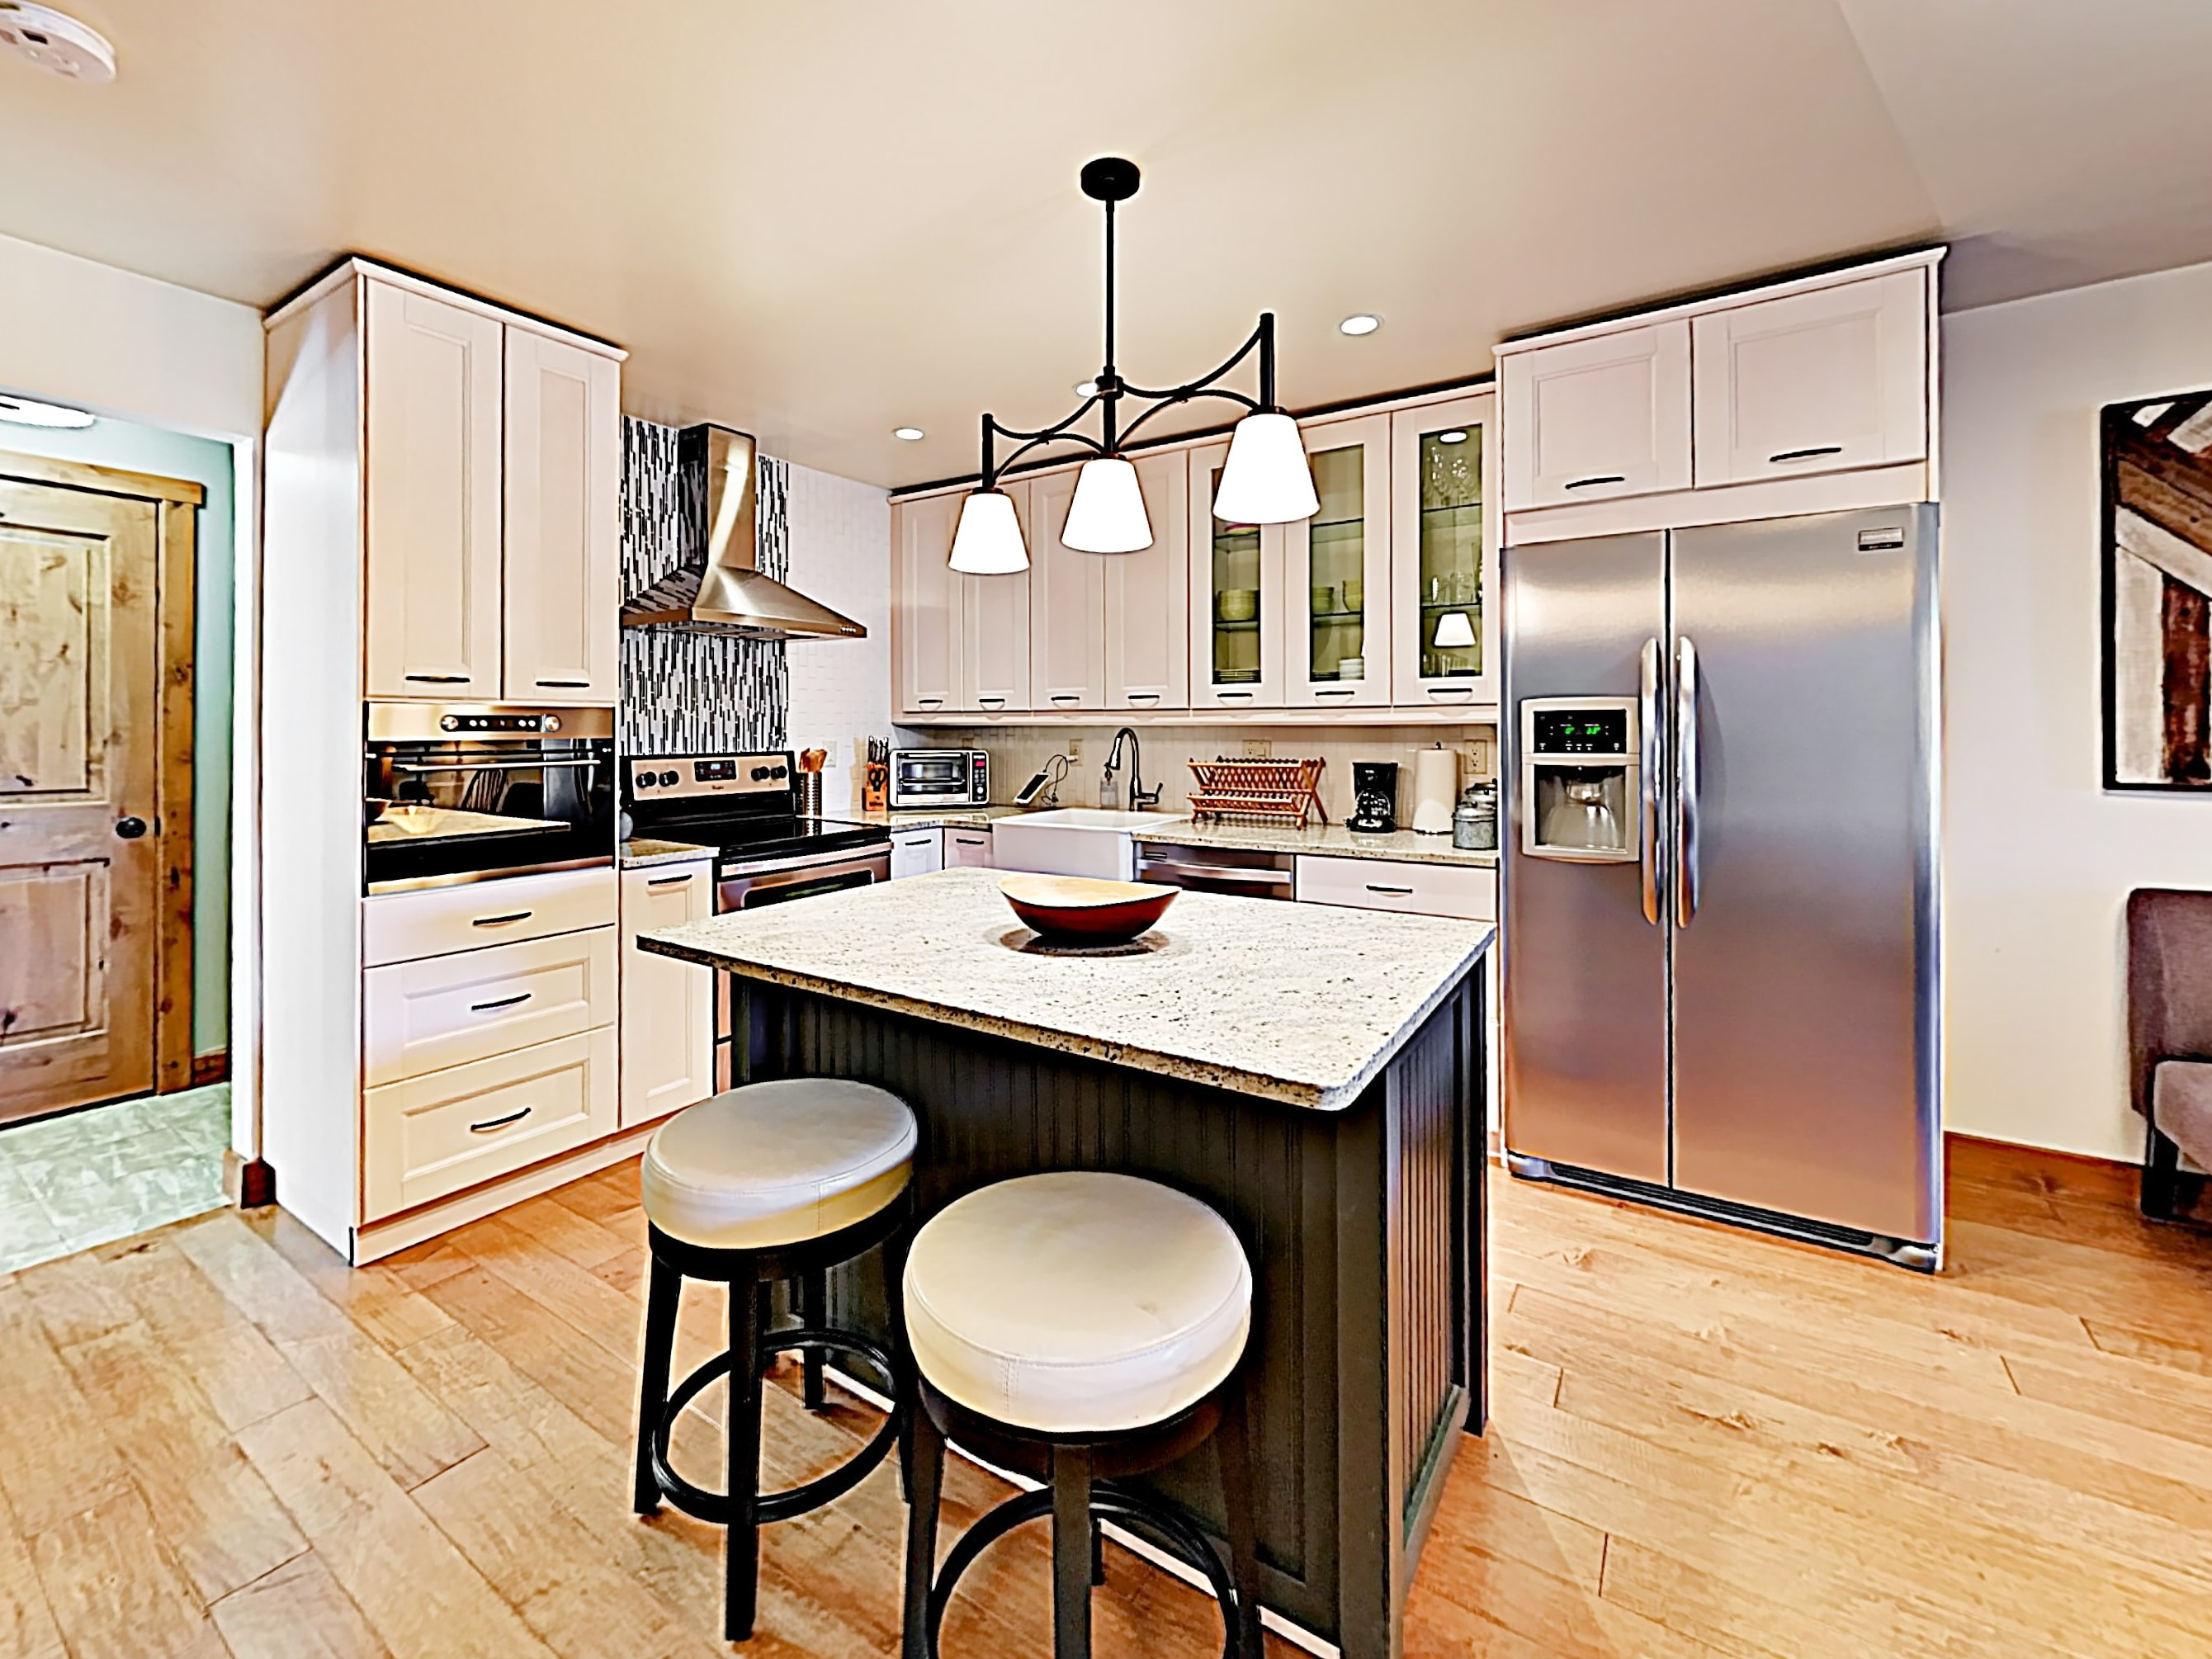 Chefs will appreciate modern kitchen, newly updated with stainless steel appliances.